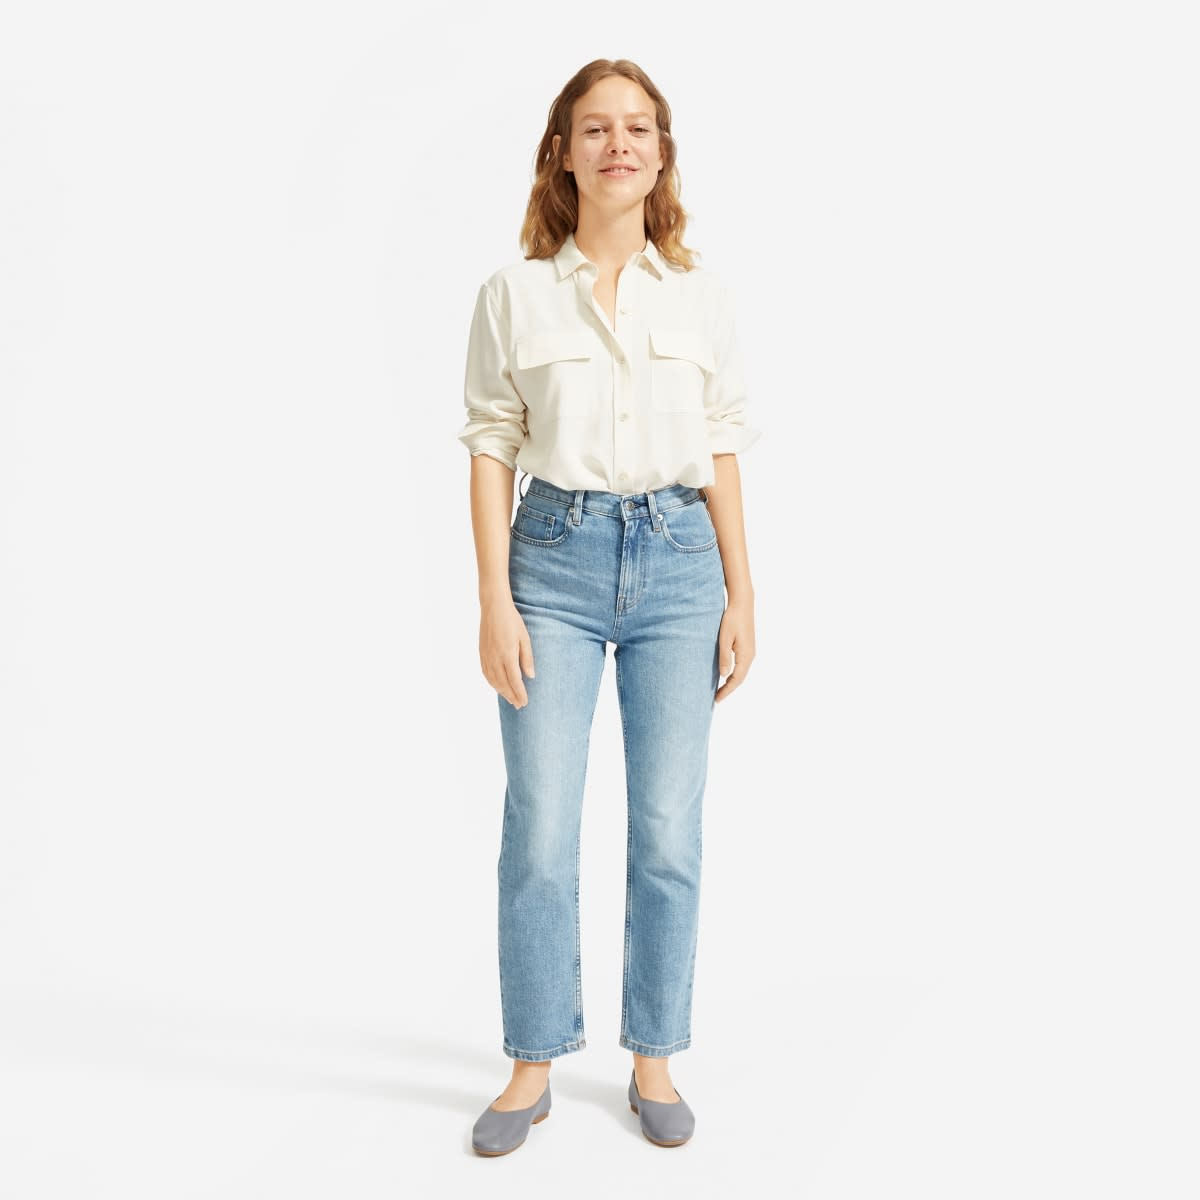 Disclaimer: not associated with Everlane but love their high quality ethical clothing